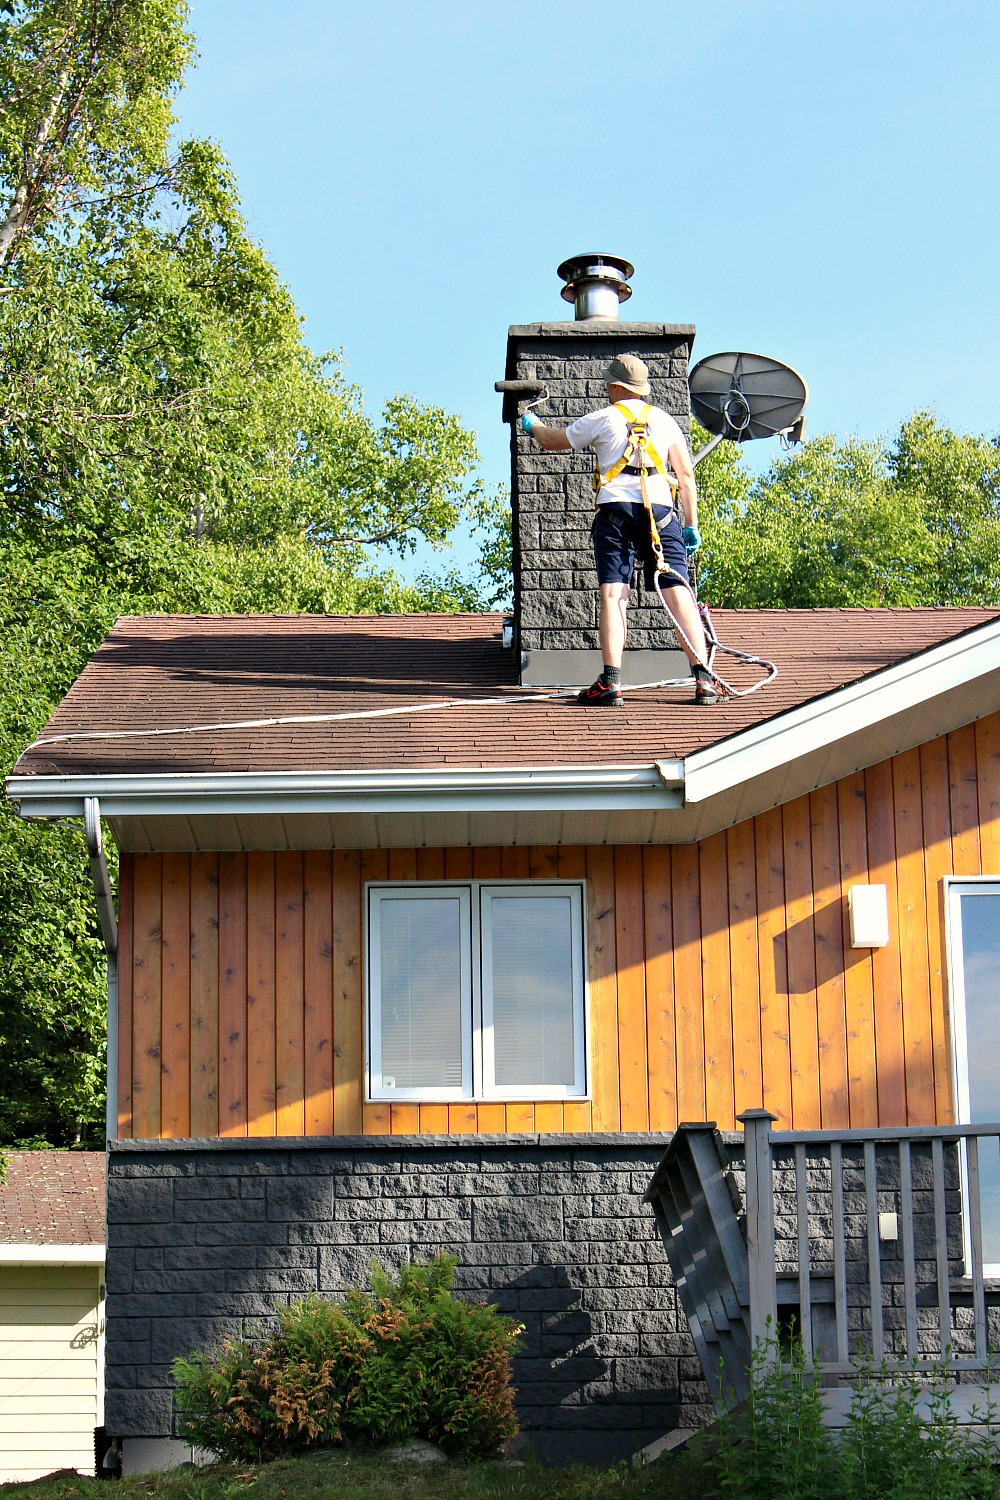 How to Safely Paint a Chimney